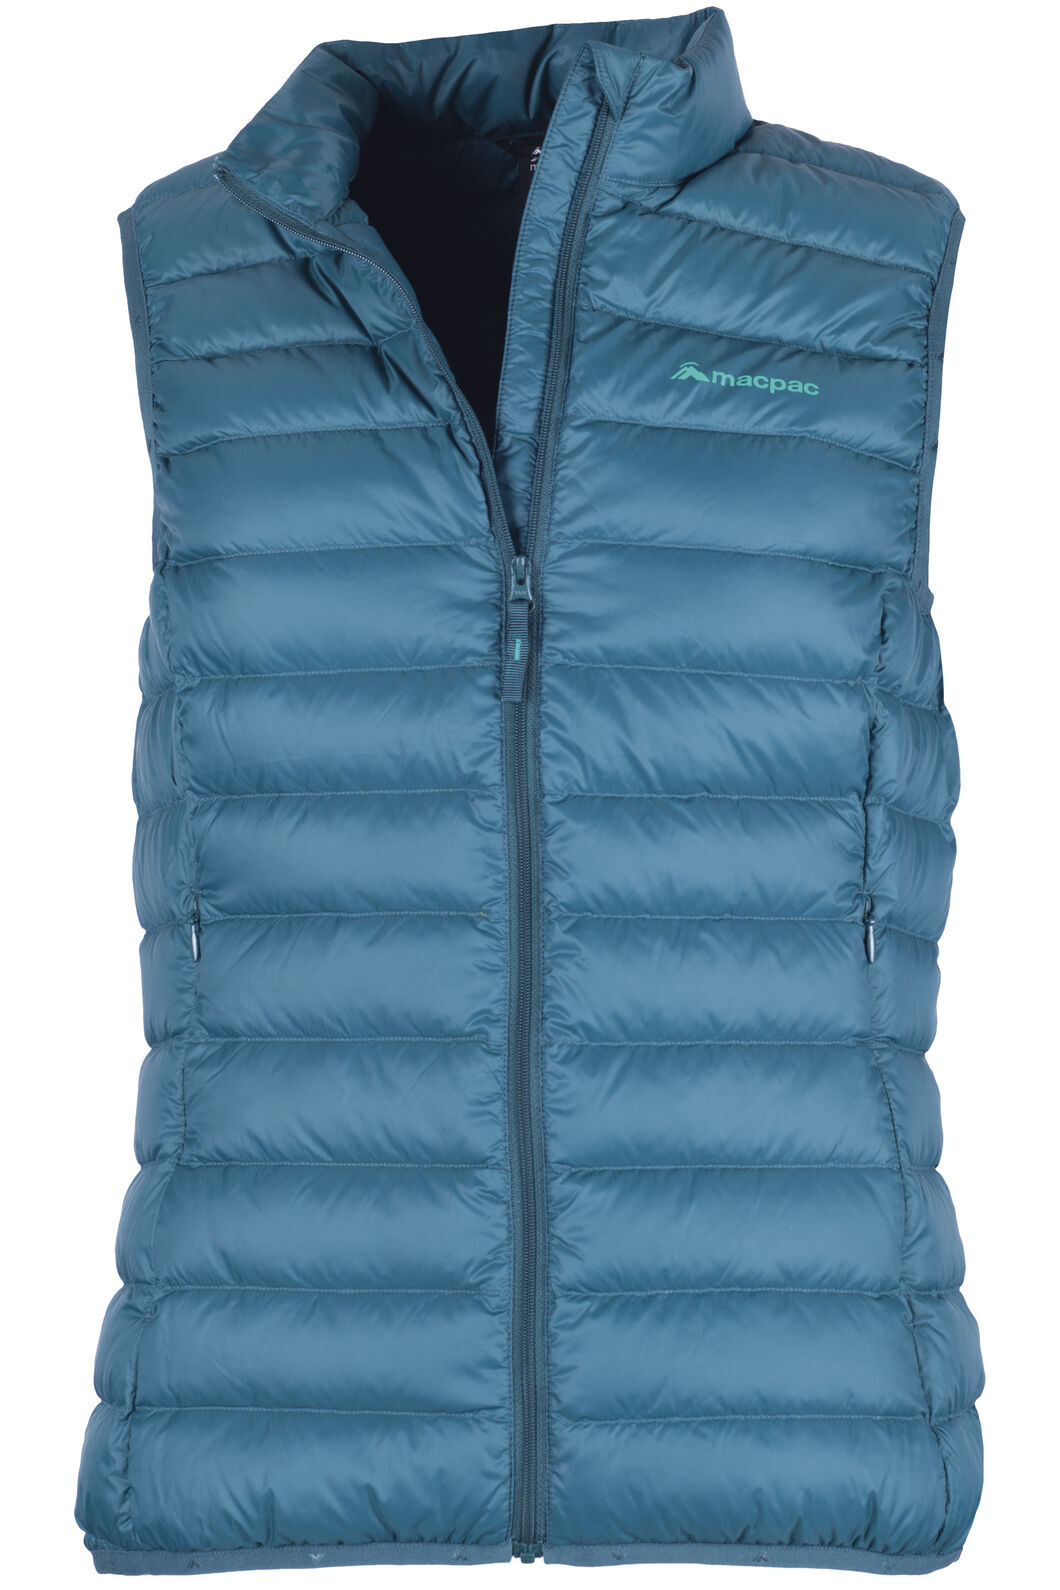 Macpac Uber Light Down Vest - Women's, Deep Teal, hi-res